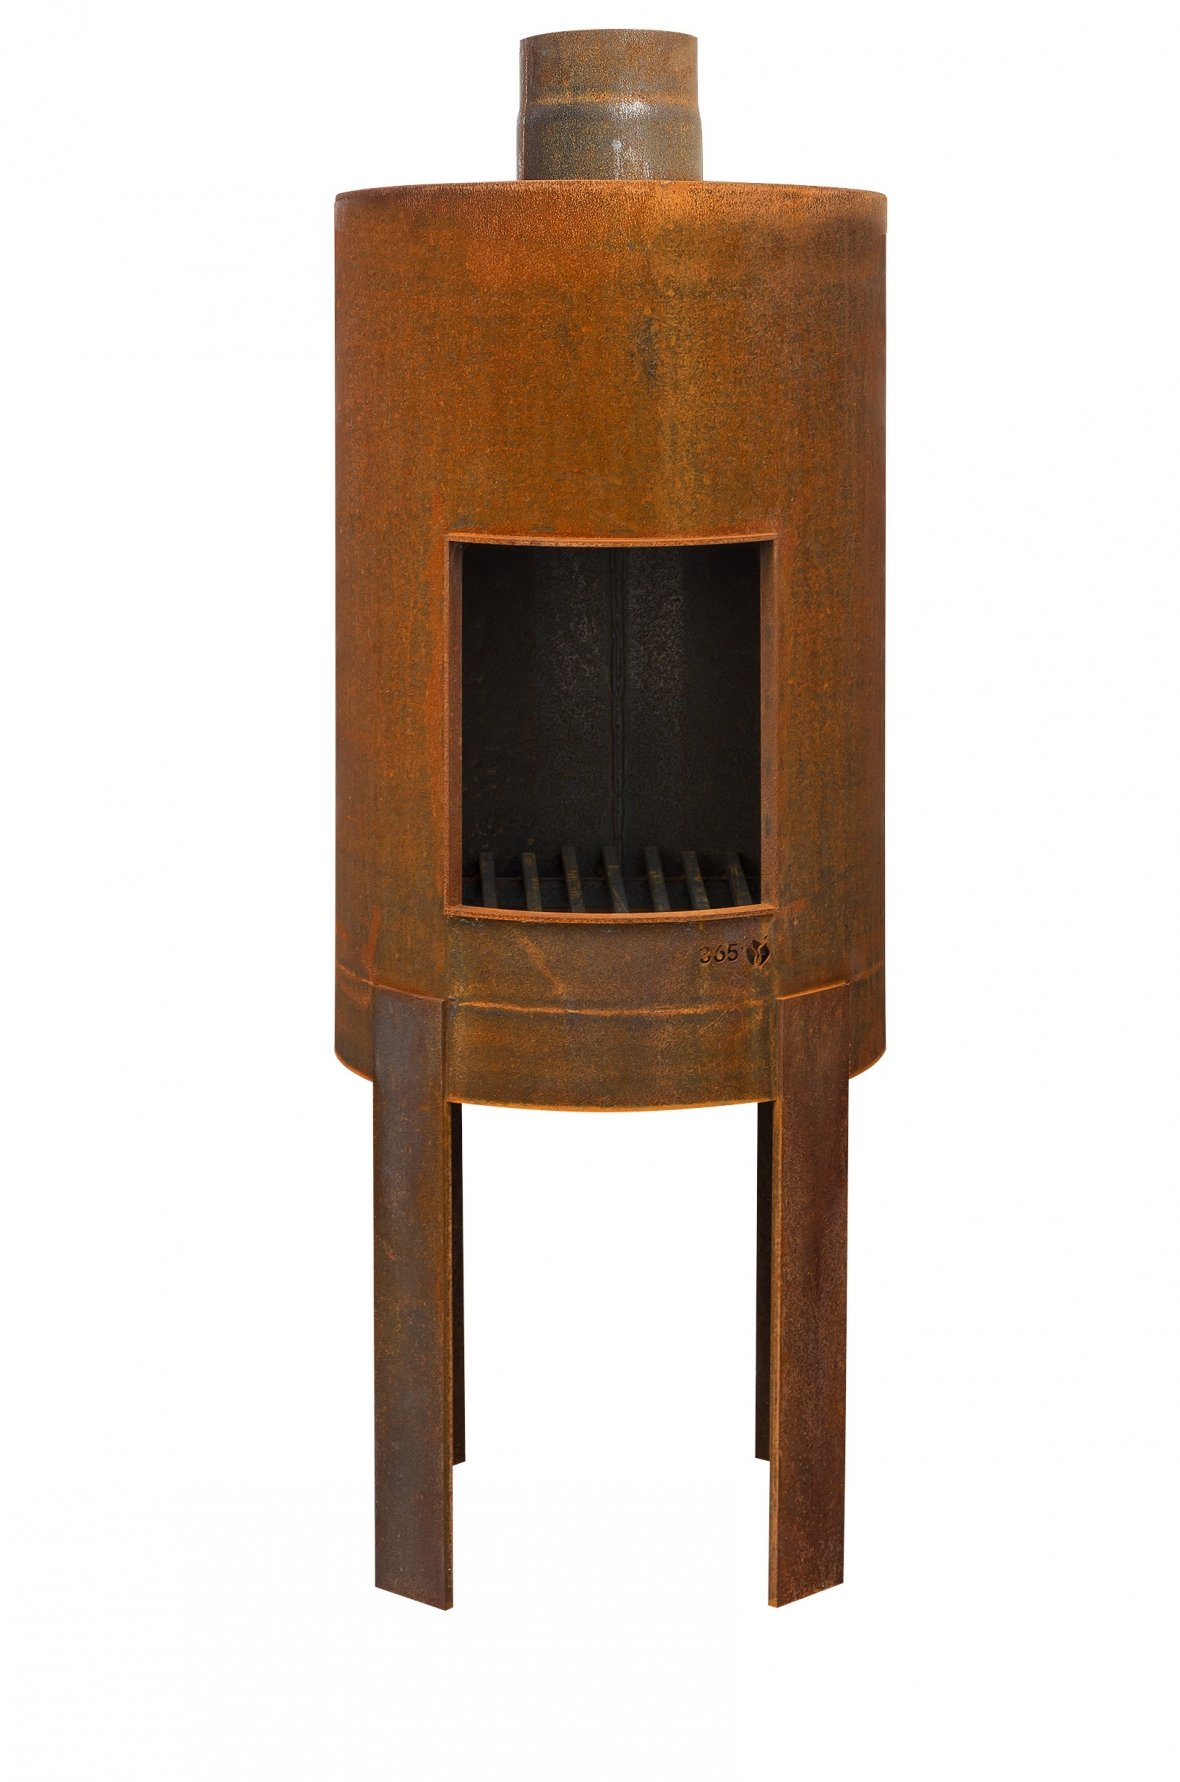 Rust-coloured outdoor oven